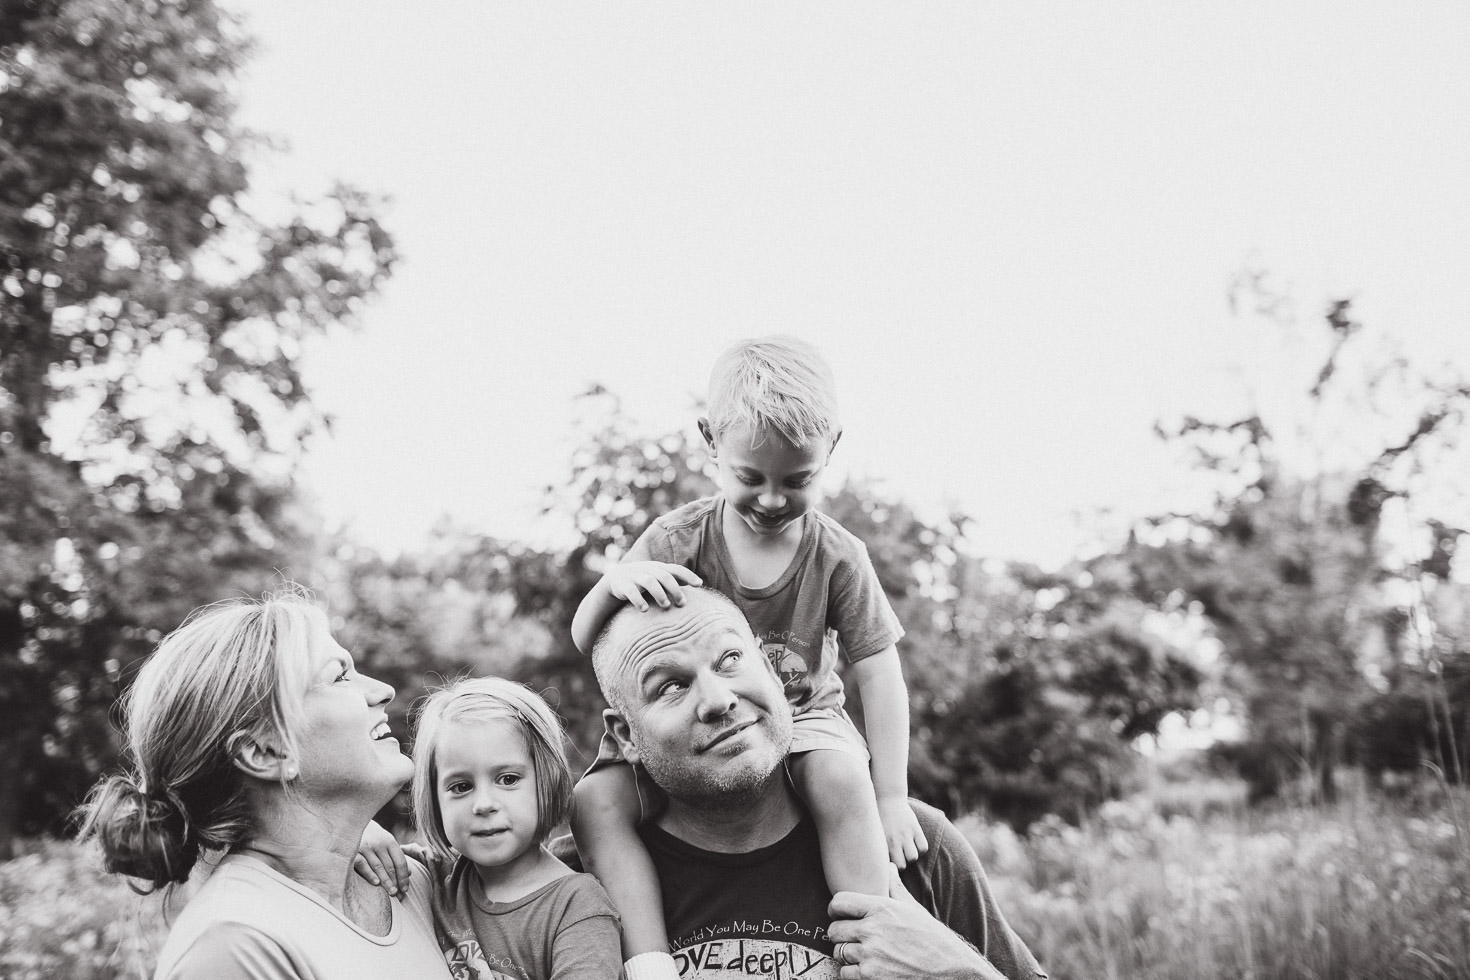 Portrait of family in open field, black and white, son sitting on father's shoulders